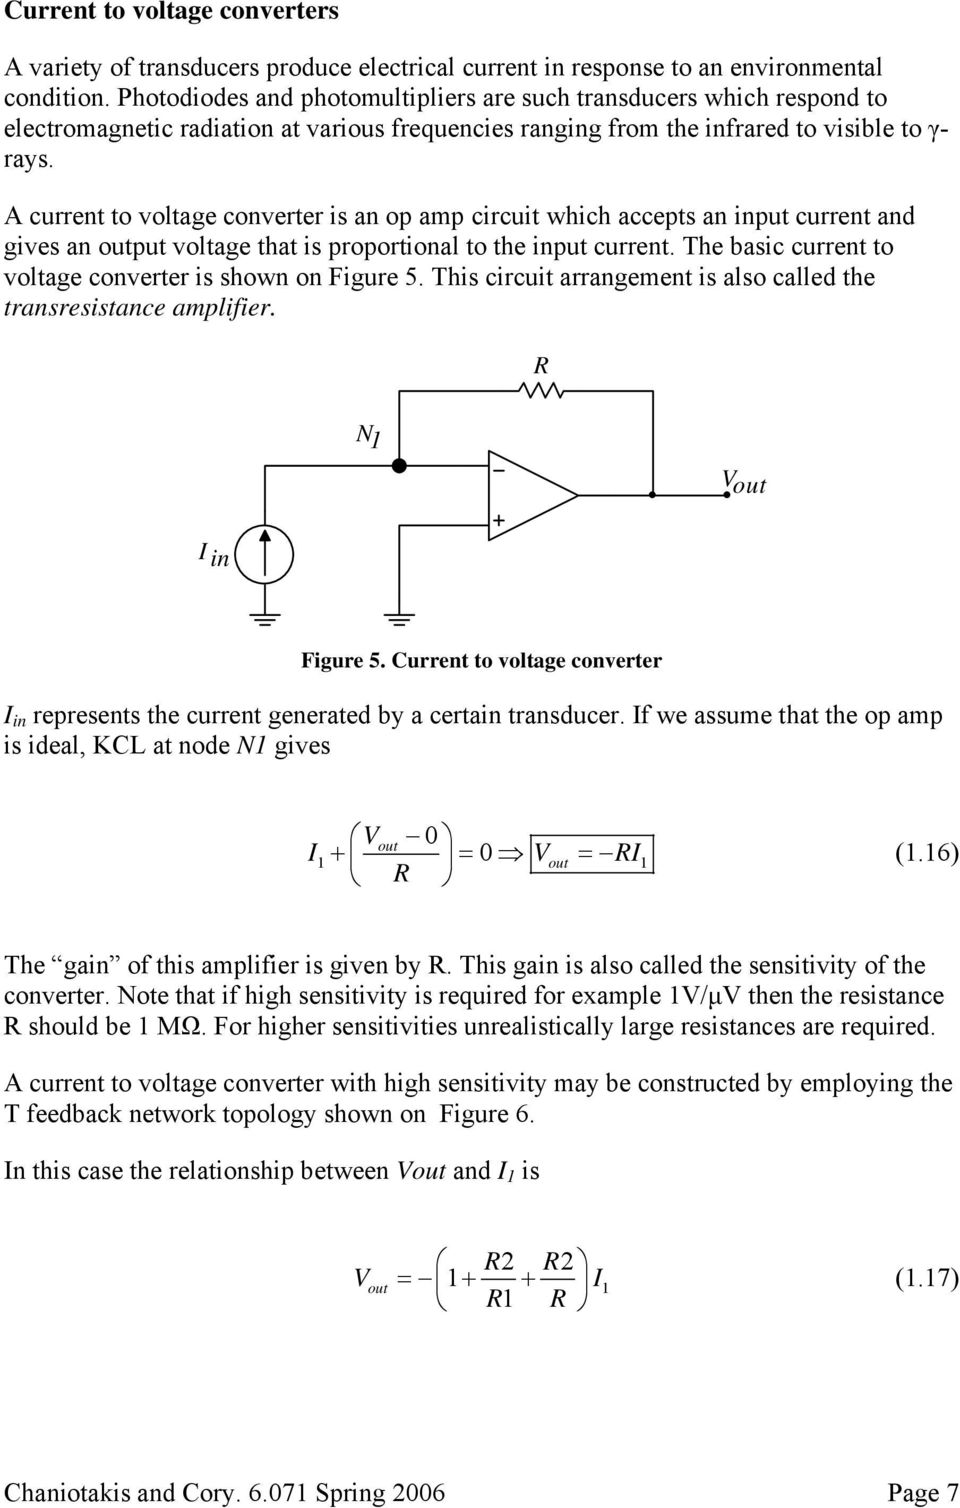 Operational Amplifier Circuits Pdf Current Circuit A To Voltage Converter Is An Op Amp Which Accepts Input And